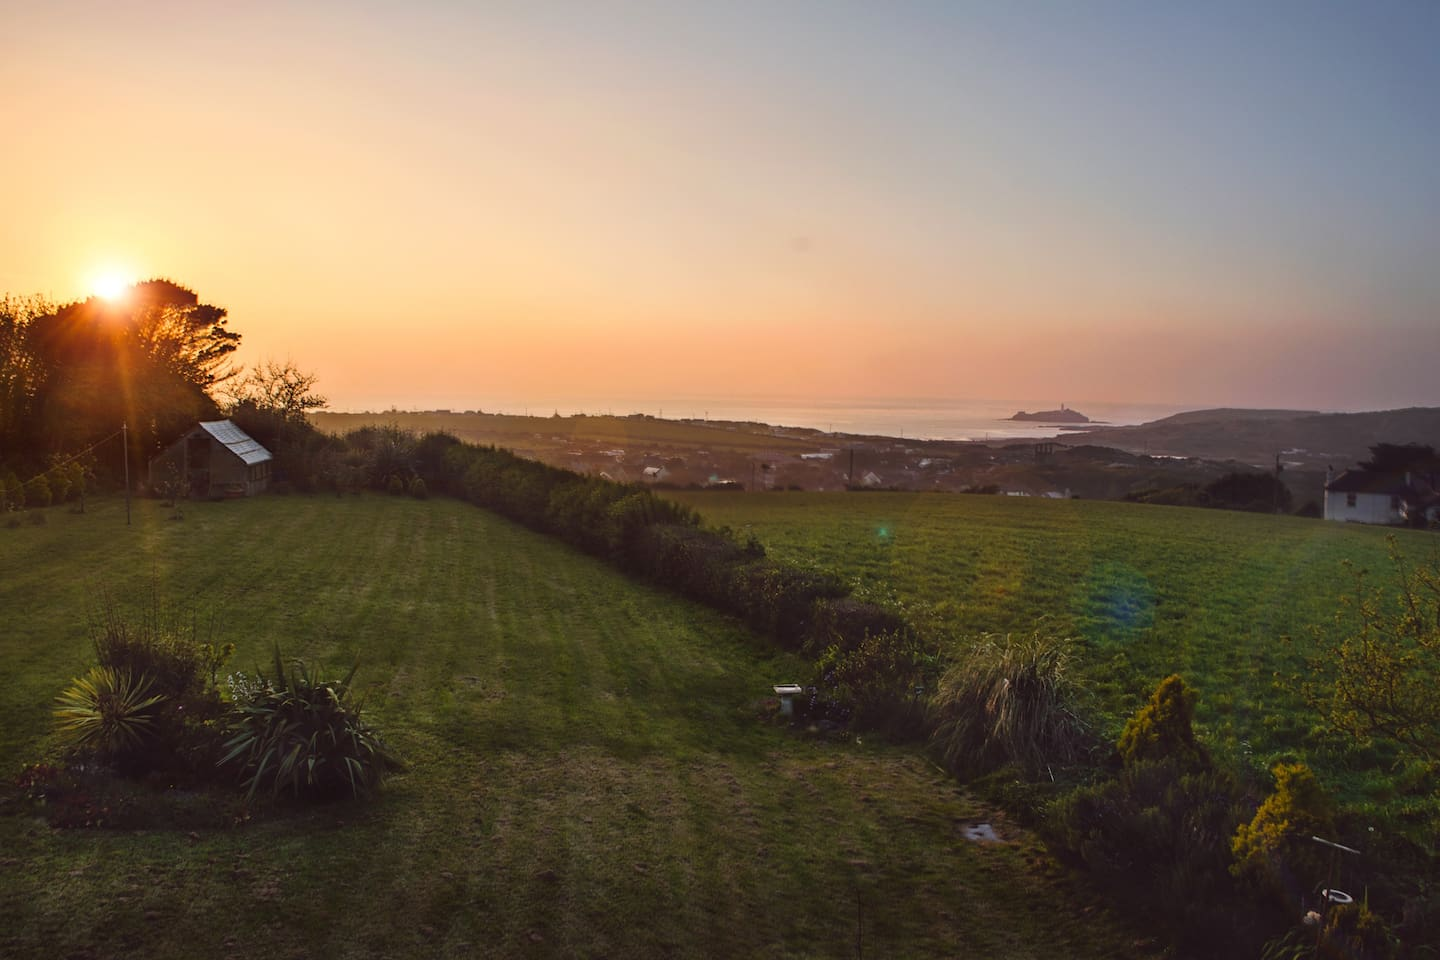 The best sunset views over dreamy St. Ives Bay